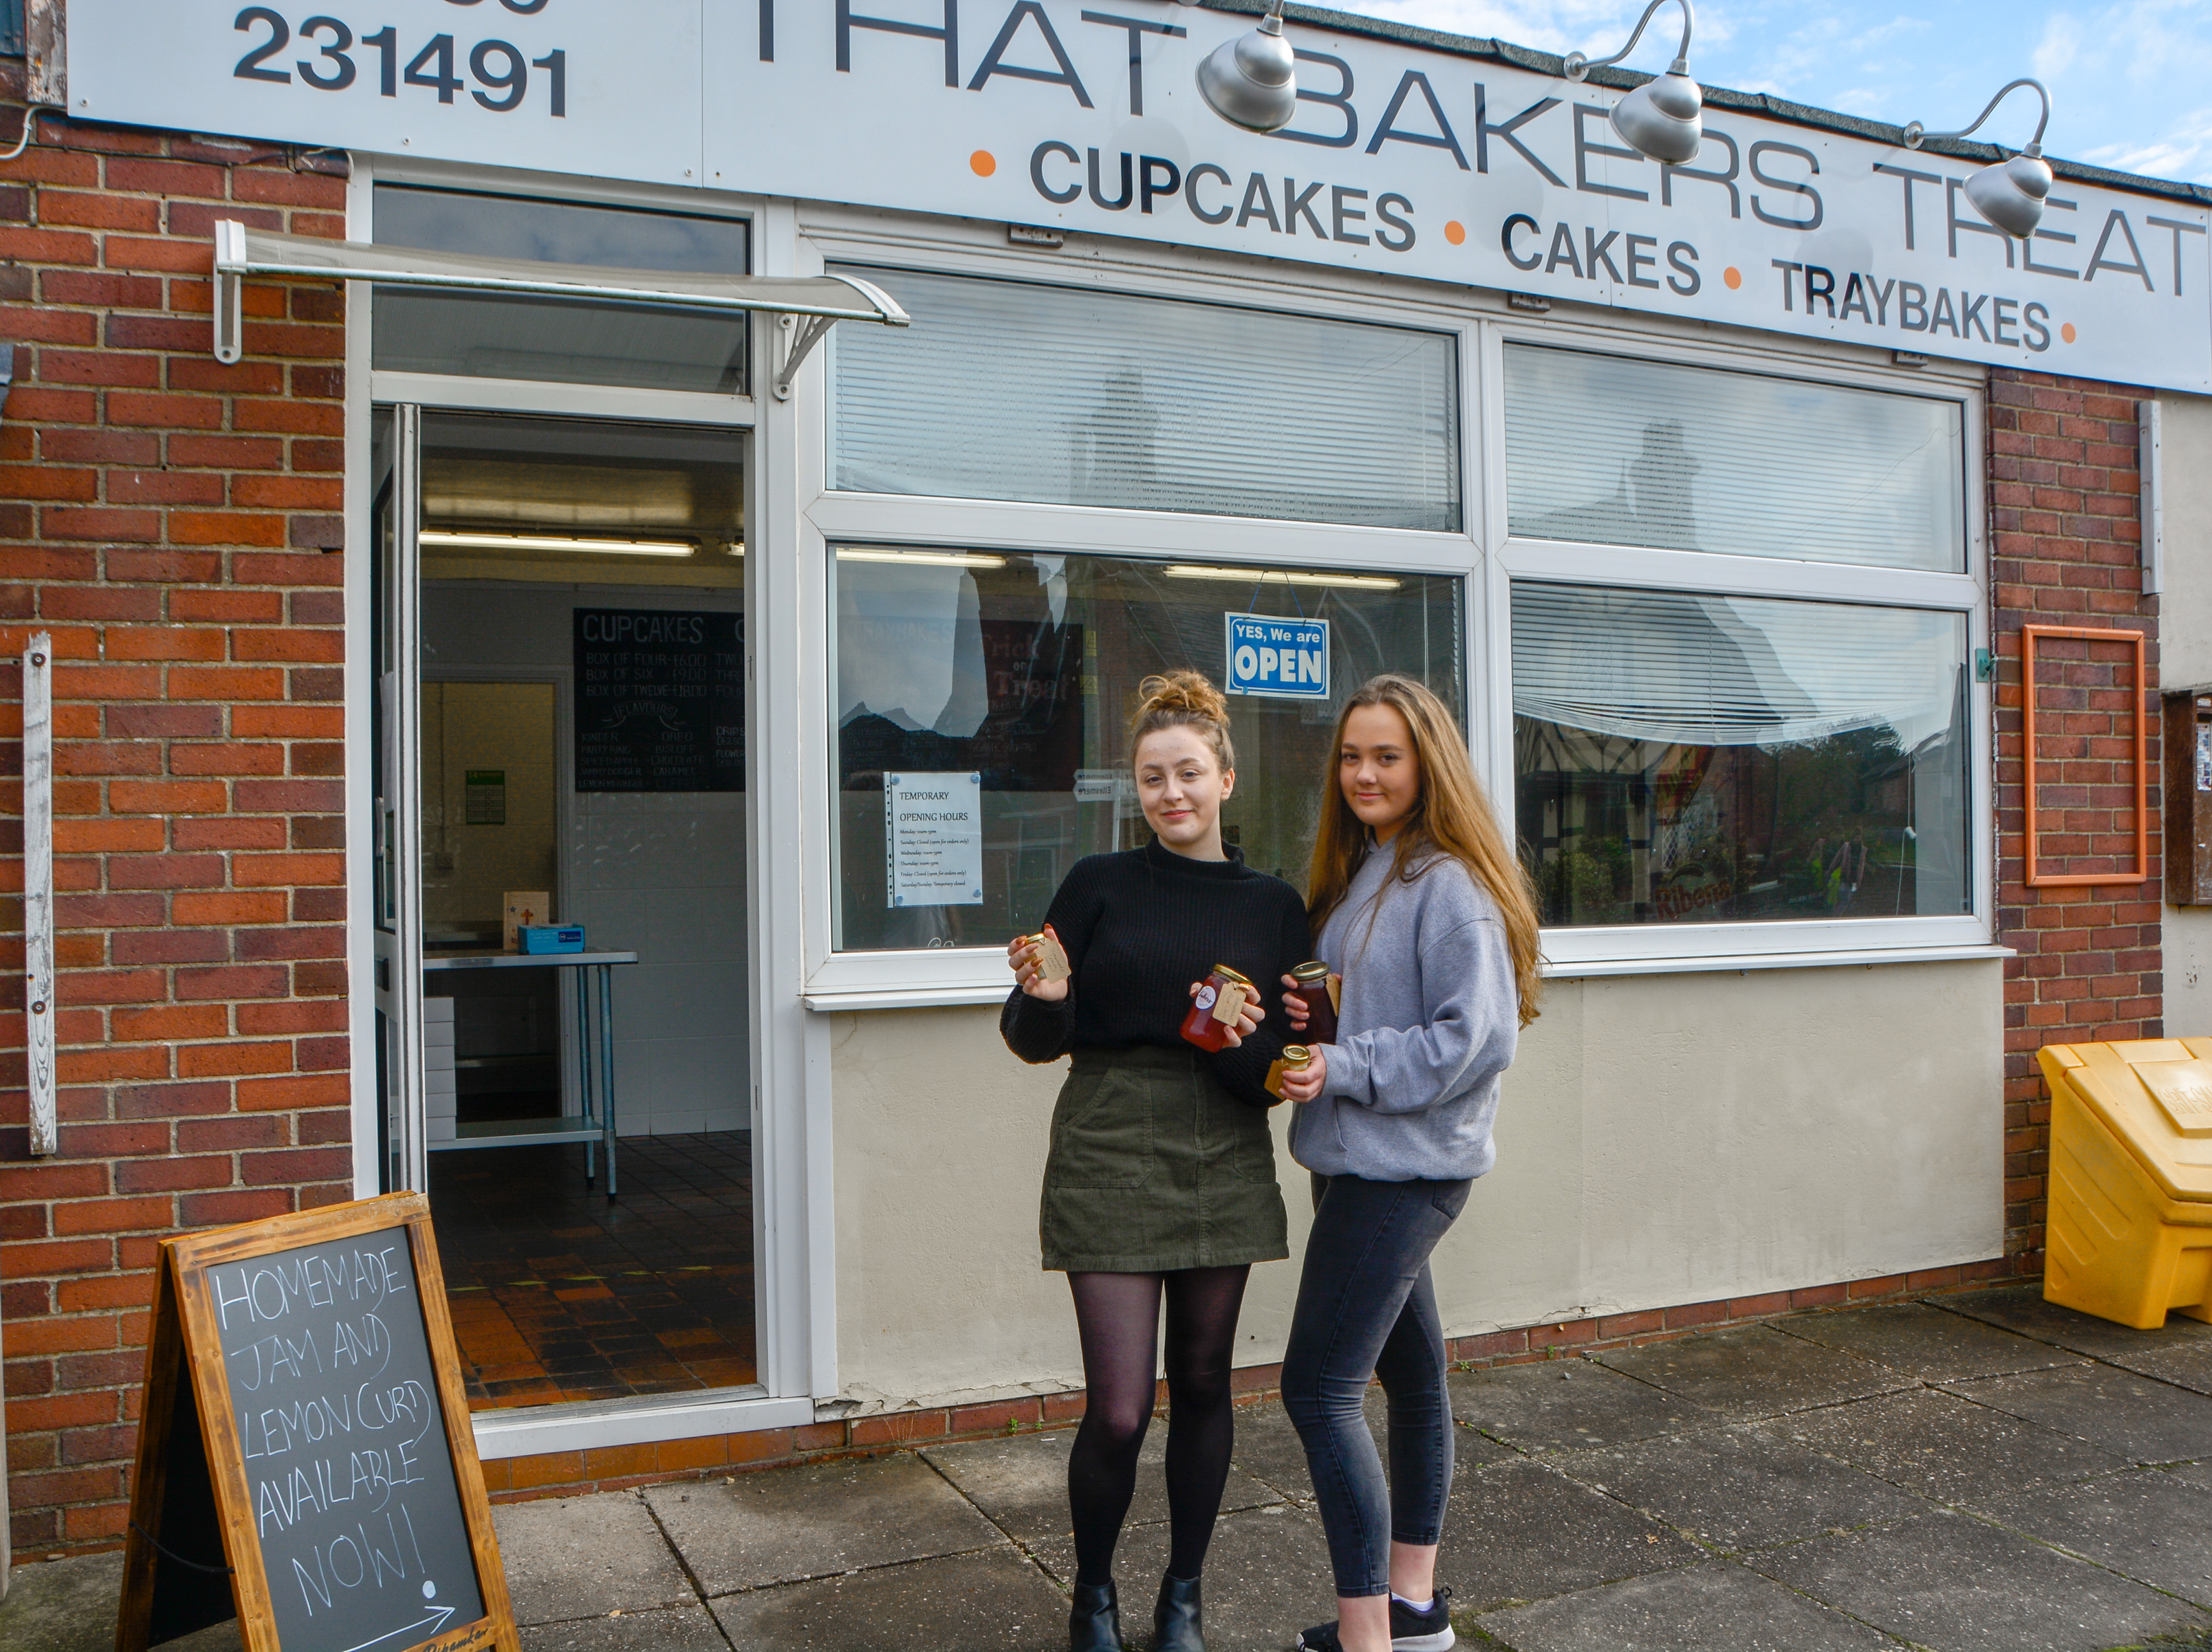 Beth Beeson and Chloe Cornall open bakery